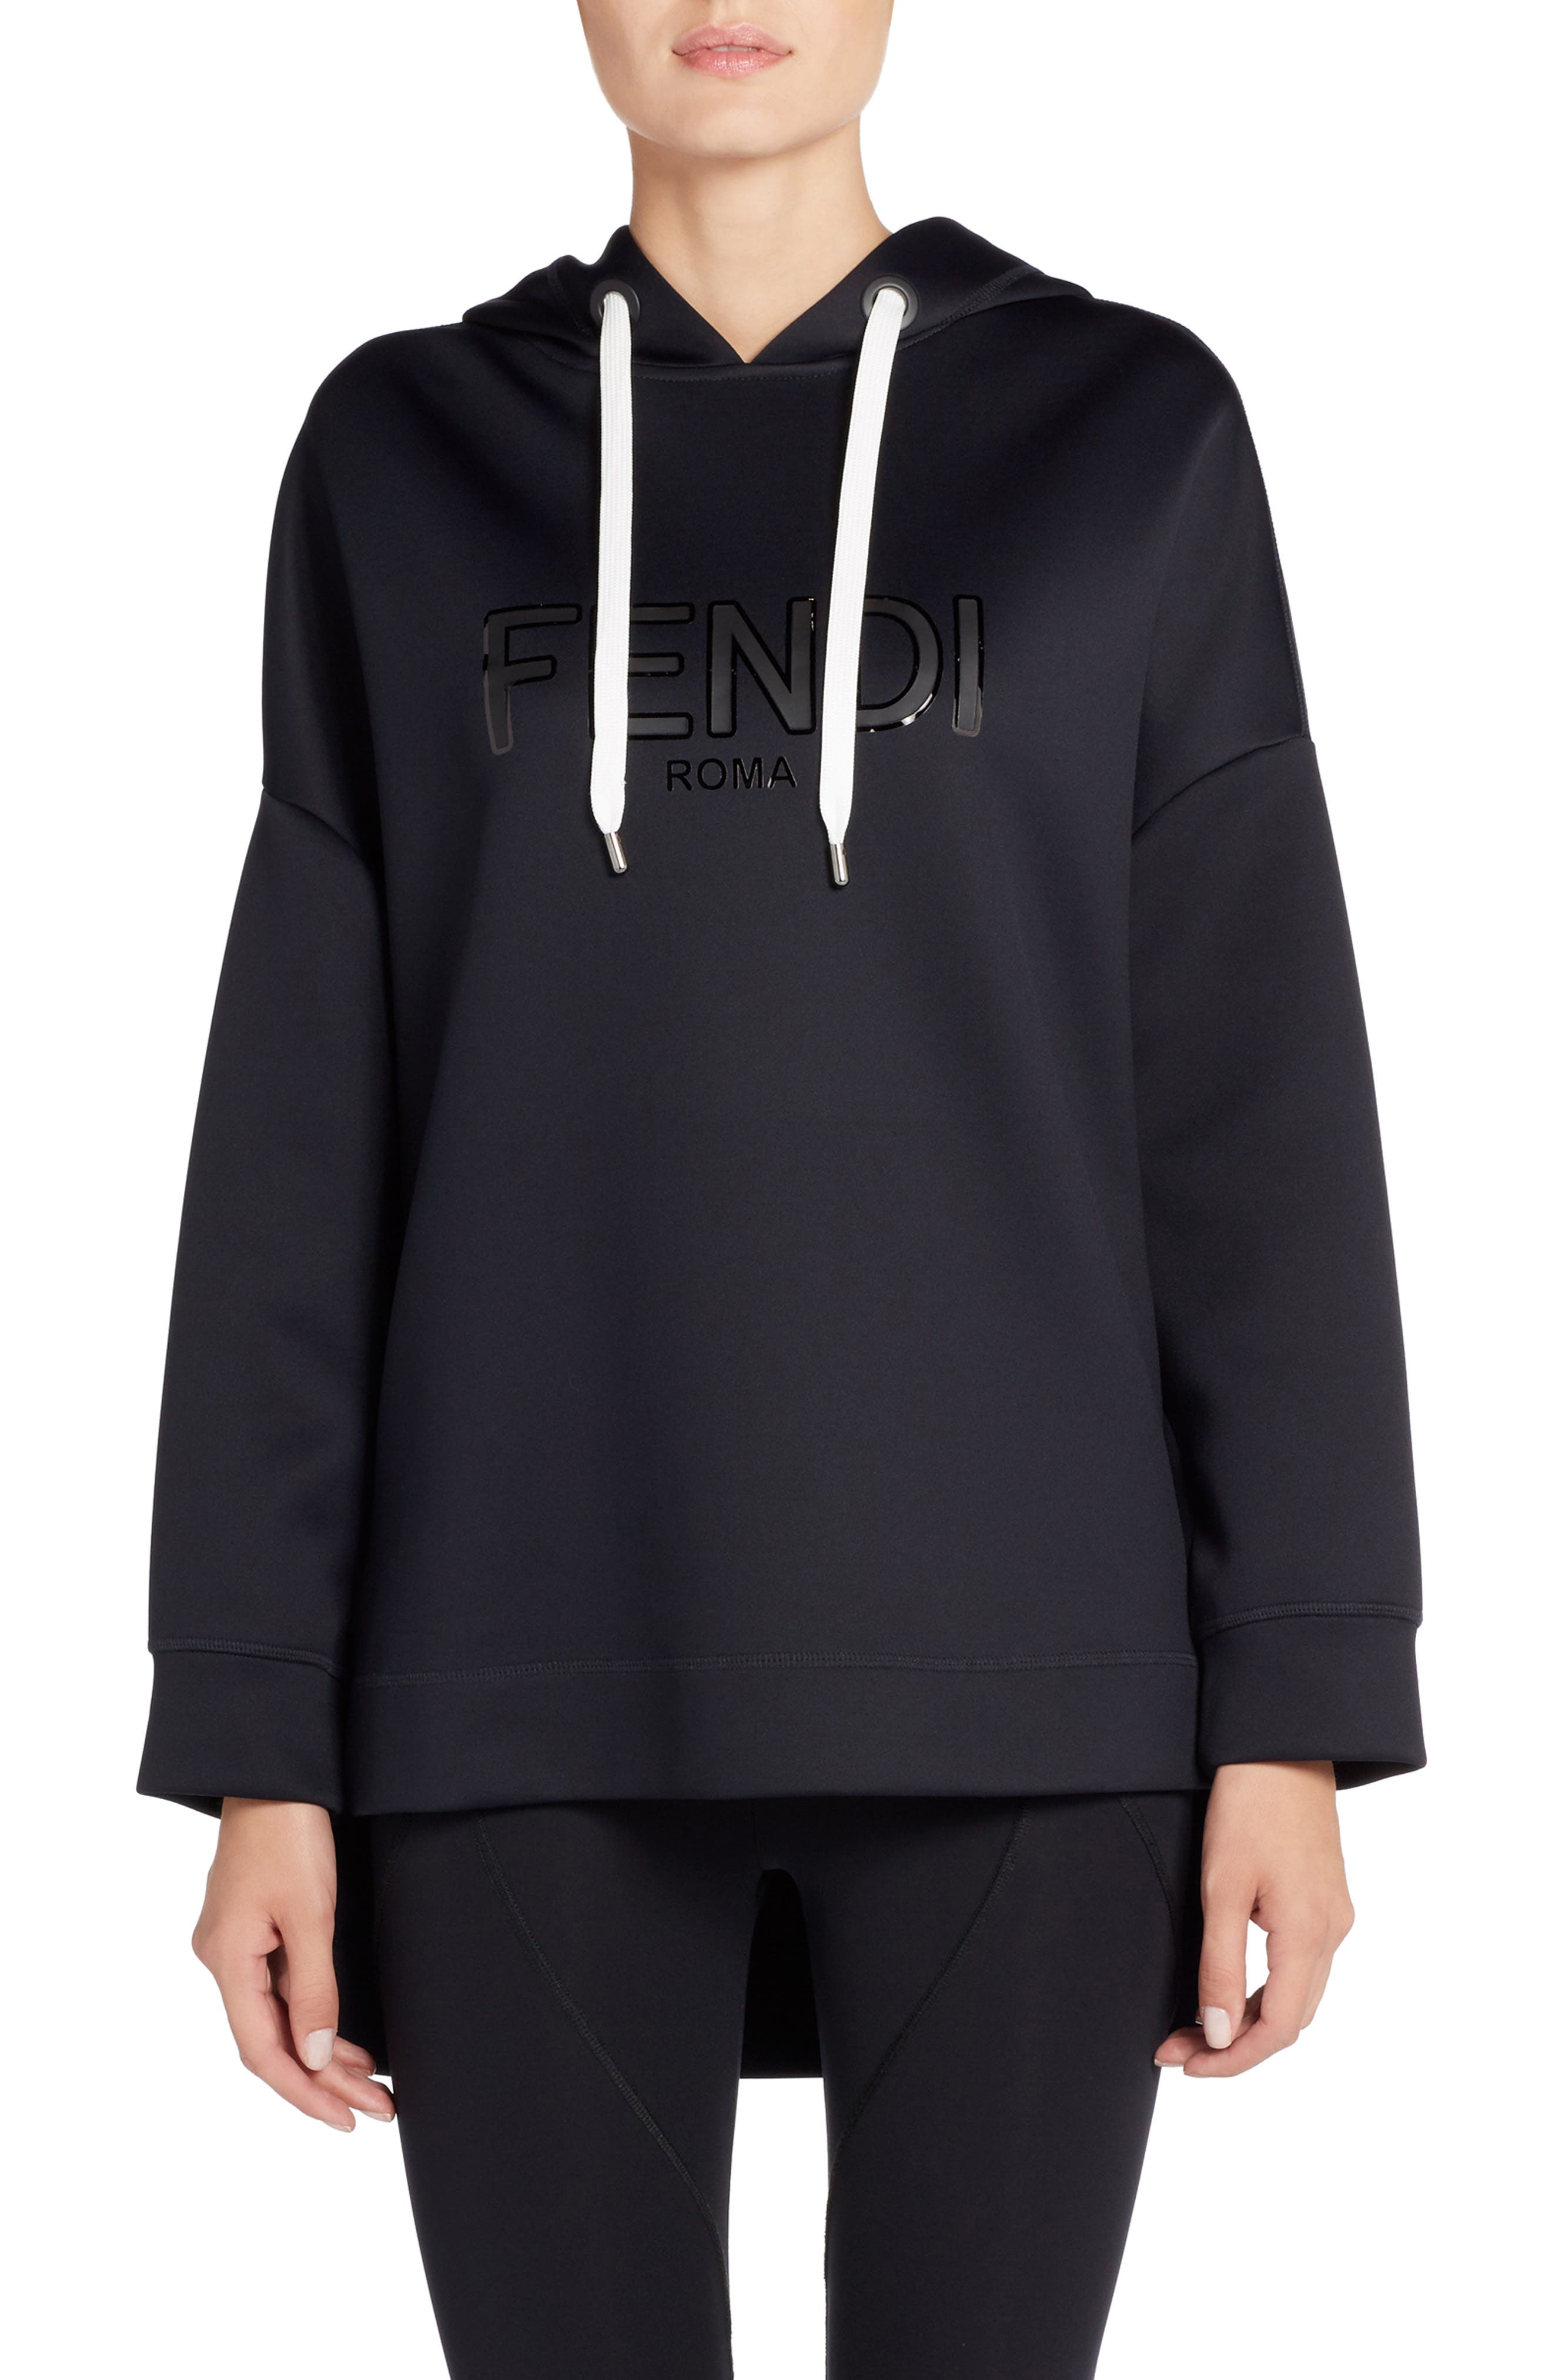 Roma Jersey Hoodie,                             Main thumbnail 1, color,                             BLACK